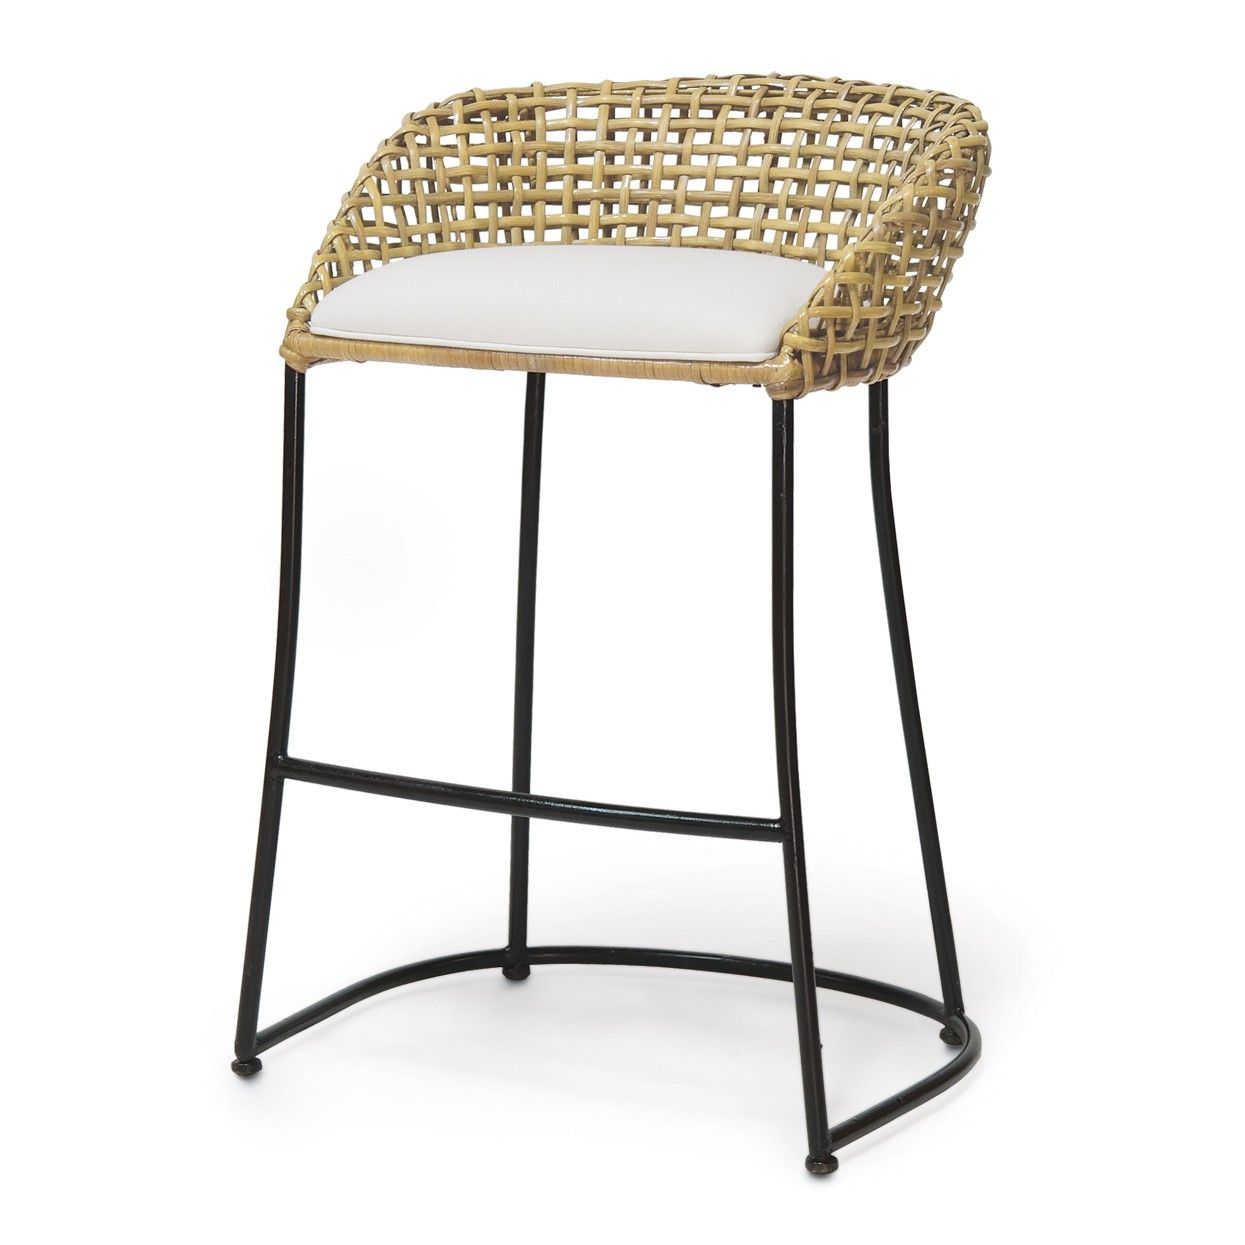 Double Wall Open Rattan Weave Wrapped Around Iron Frame Available In 2 Sizes Counter Stool 24 H X 2 Rattan Bar Stools Rattan Counter Stools Bar Stools